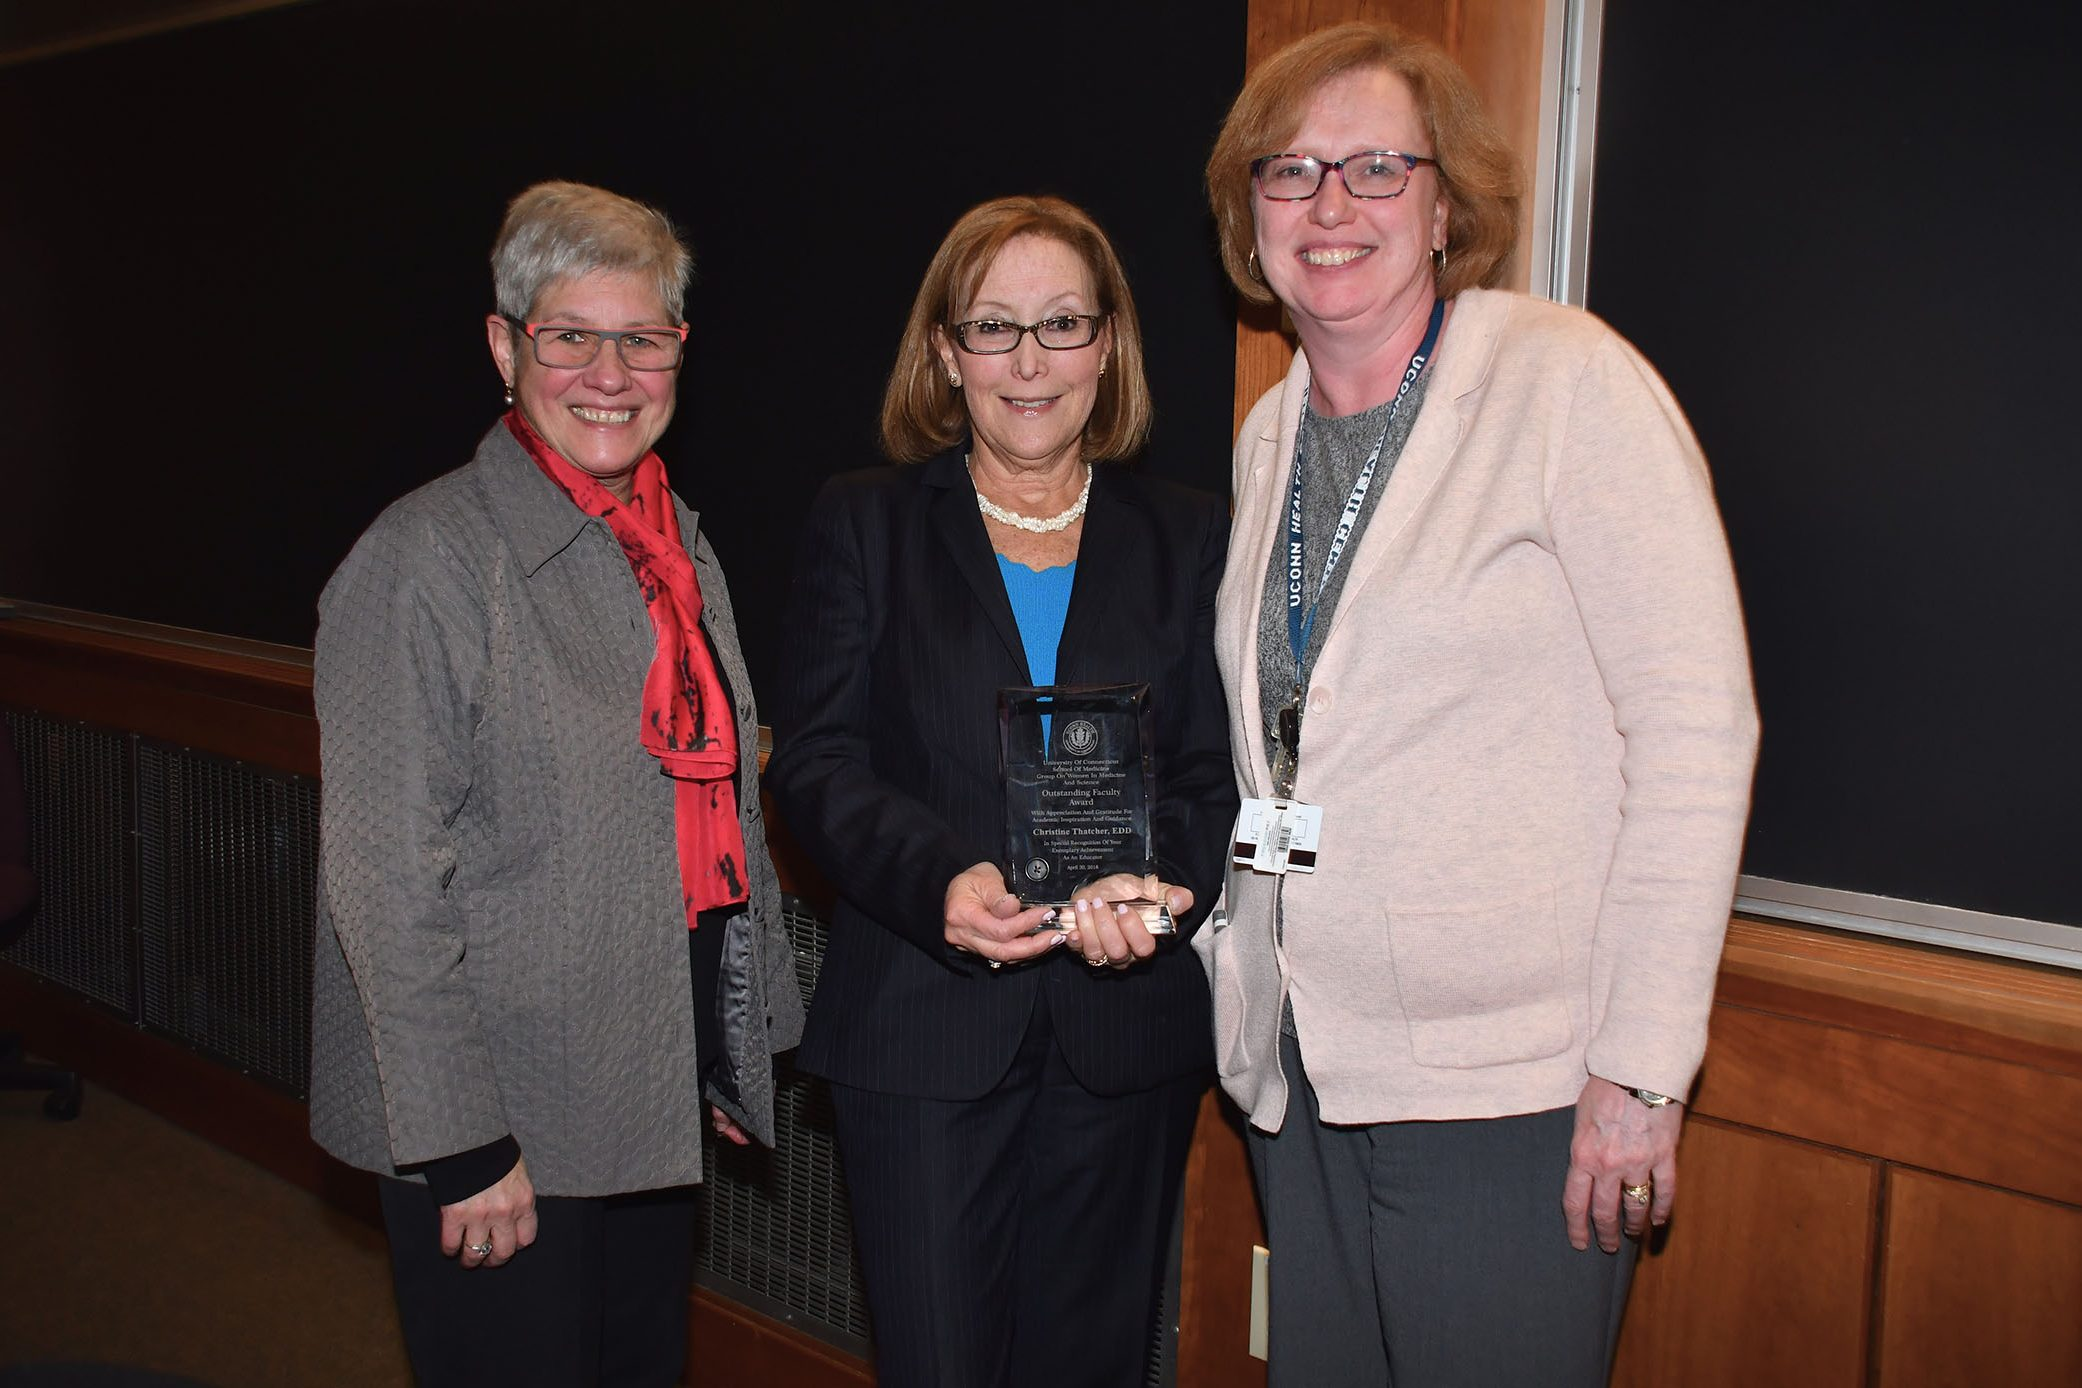 Judith D. Singer, Ph.D., Pamela Taxel, M.D., and Christine Thatcher, EDD